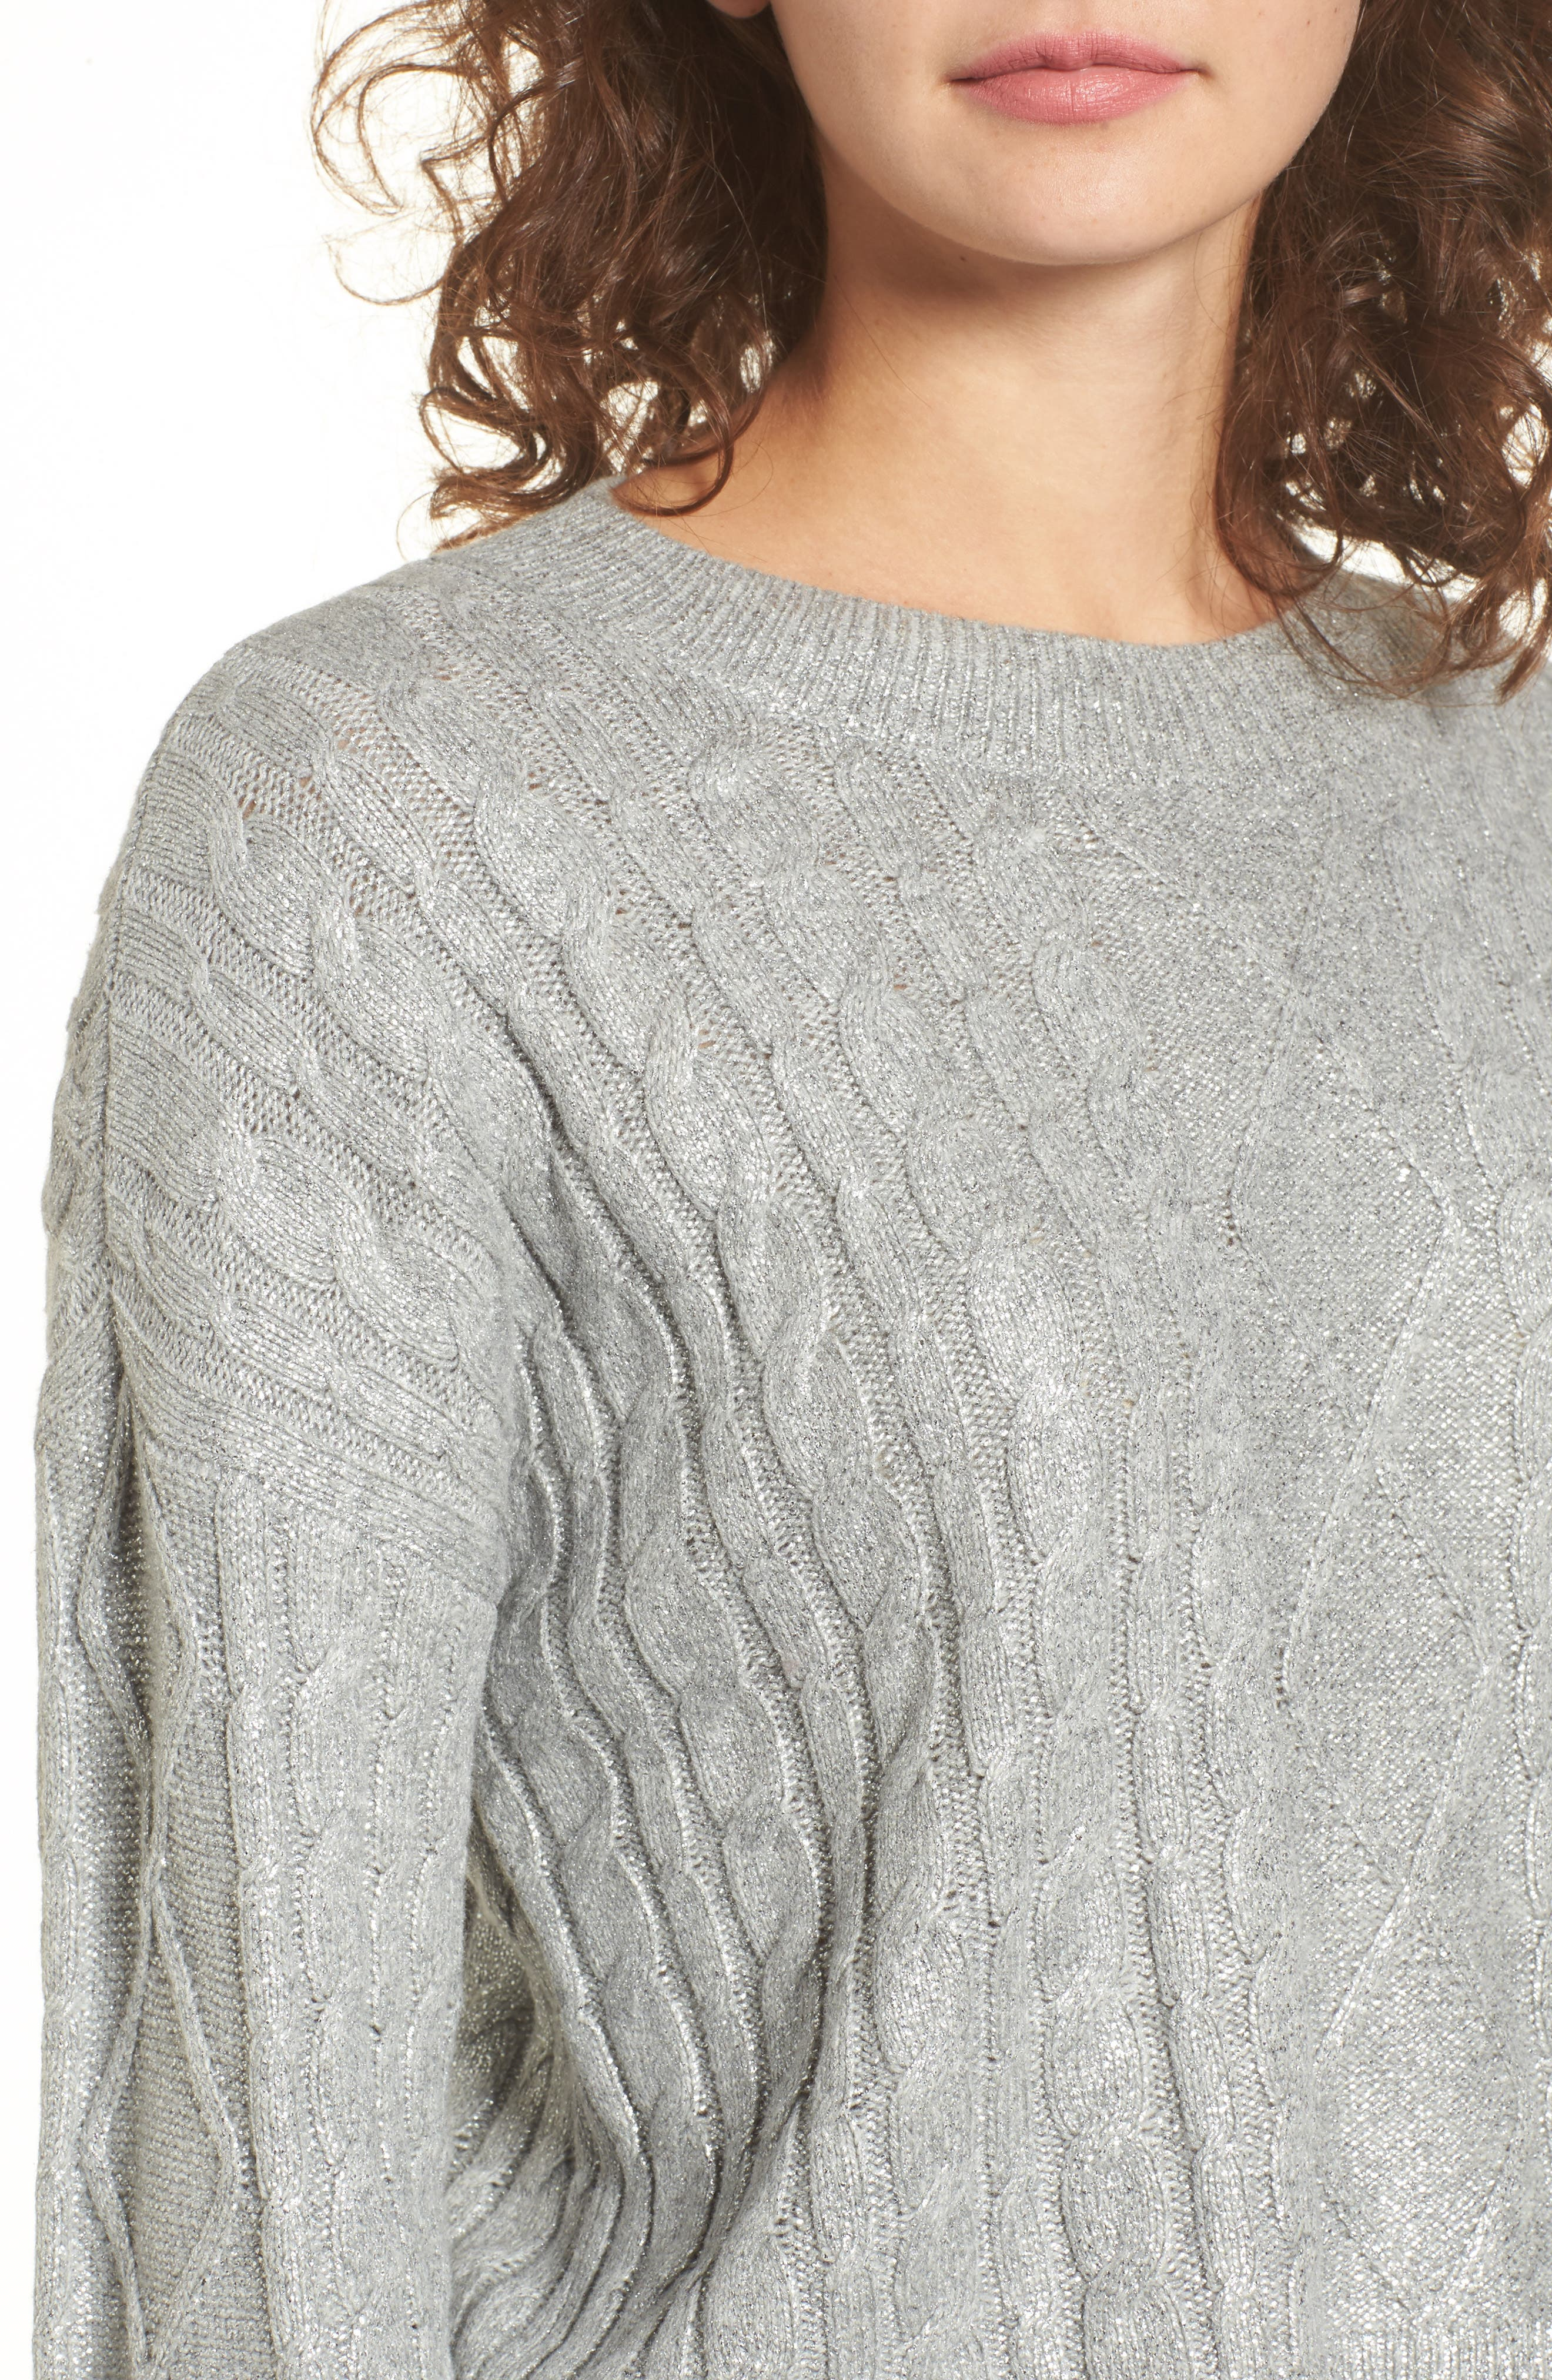 Metallic Cable Knit Sweater,                             Alternate thumbnail 4, color,                             030